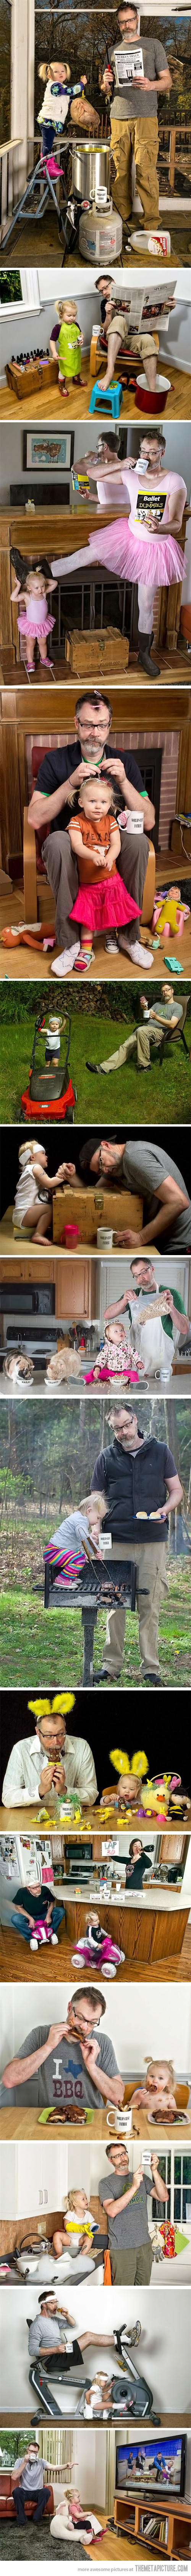 Awesome father daughter photos! :)